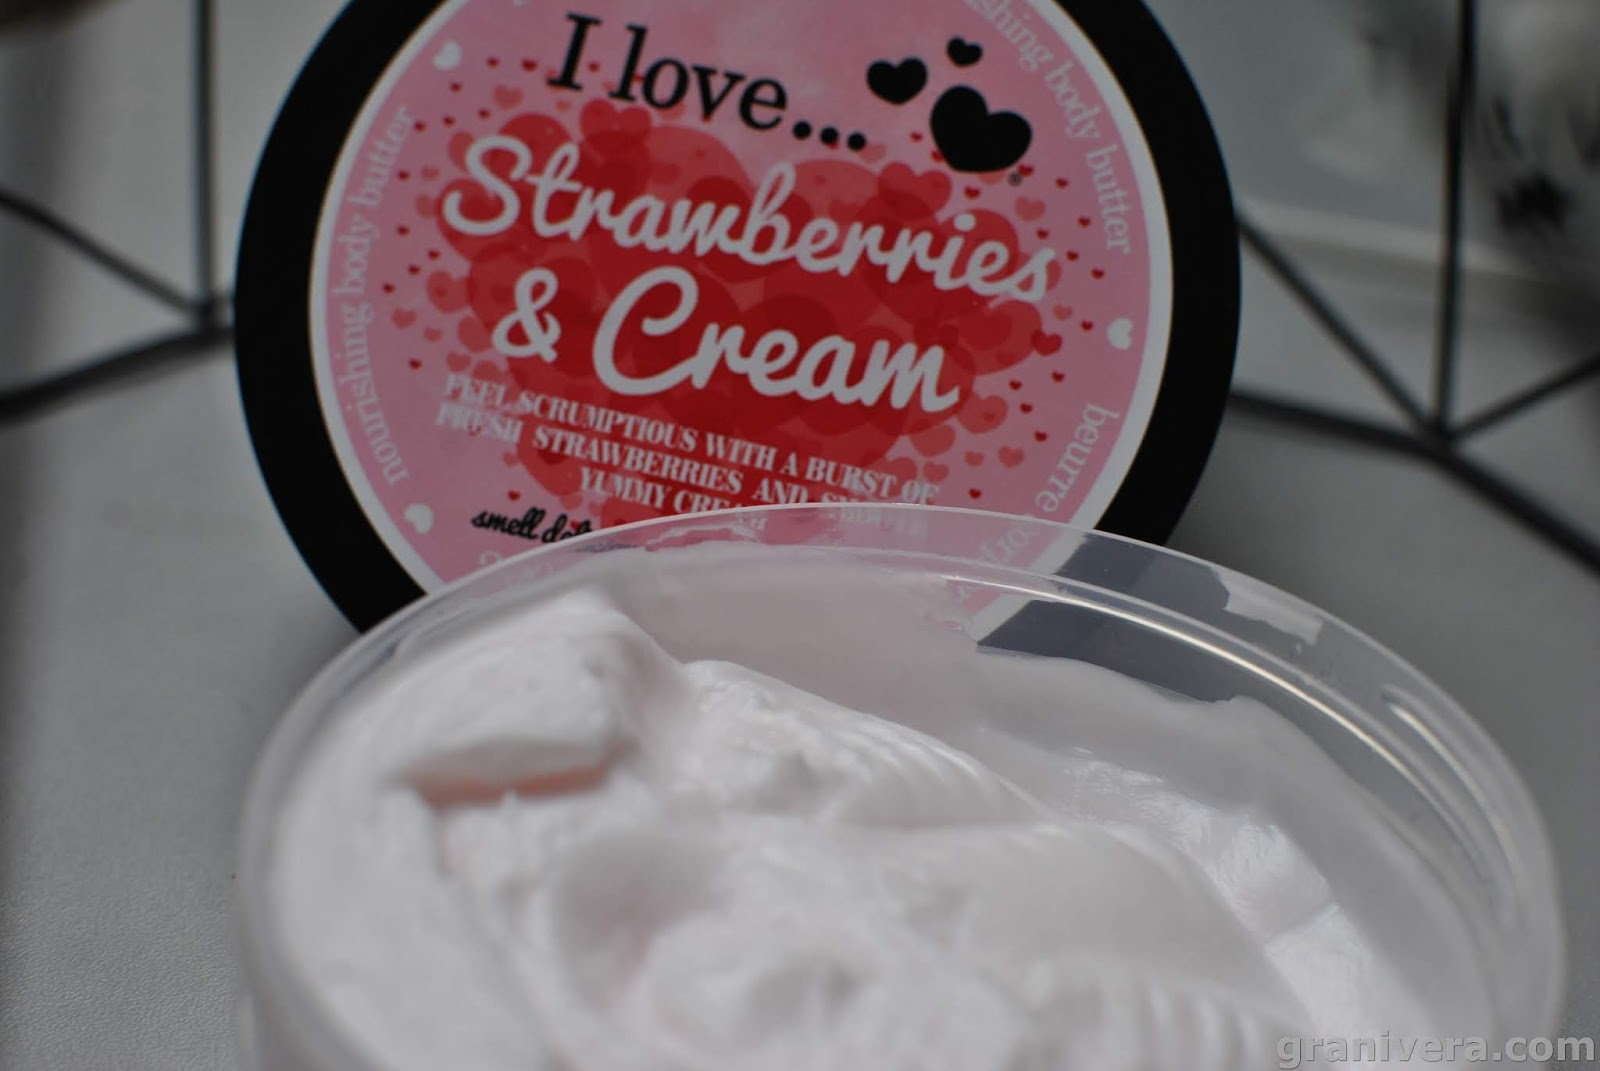 I Love... Cosmetics masło do ciała / Strawberries & Cream